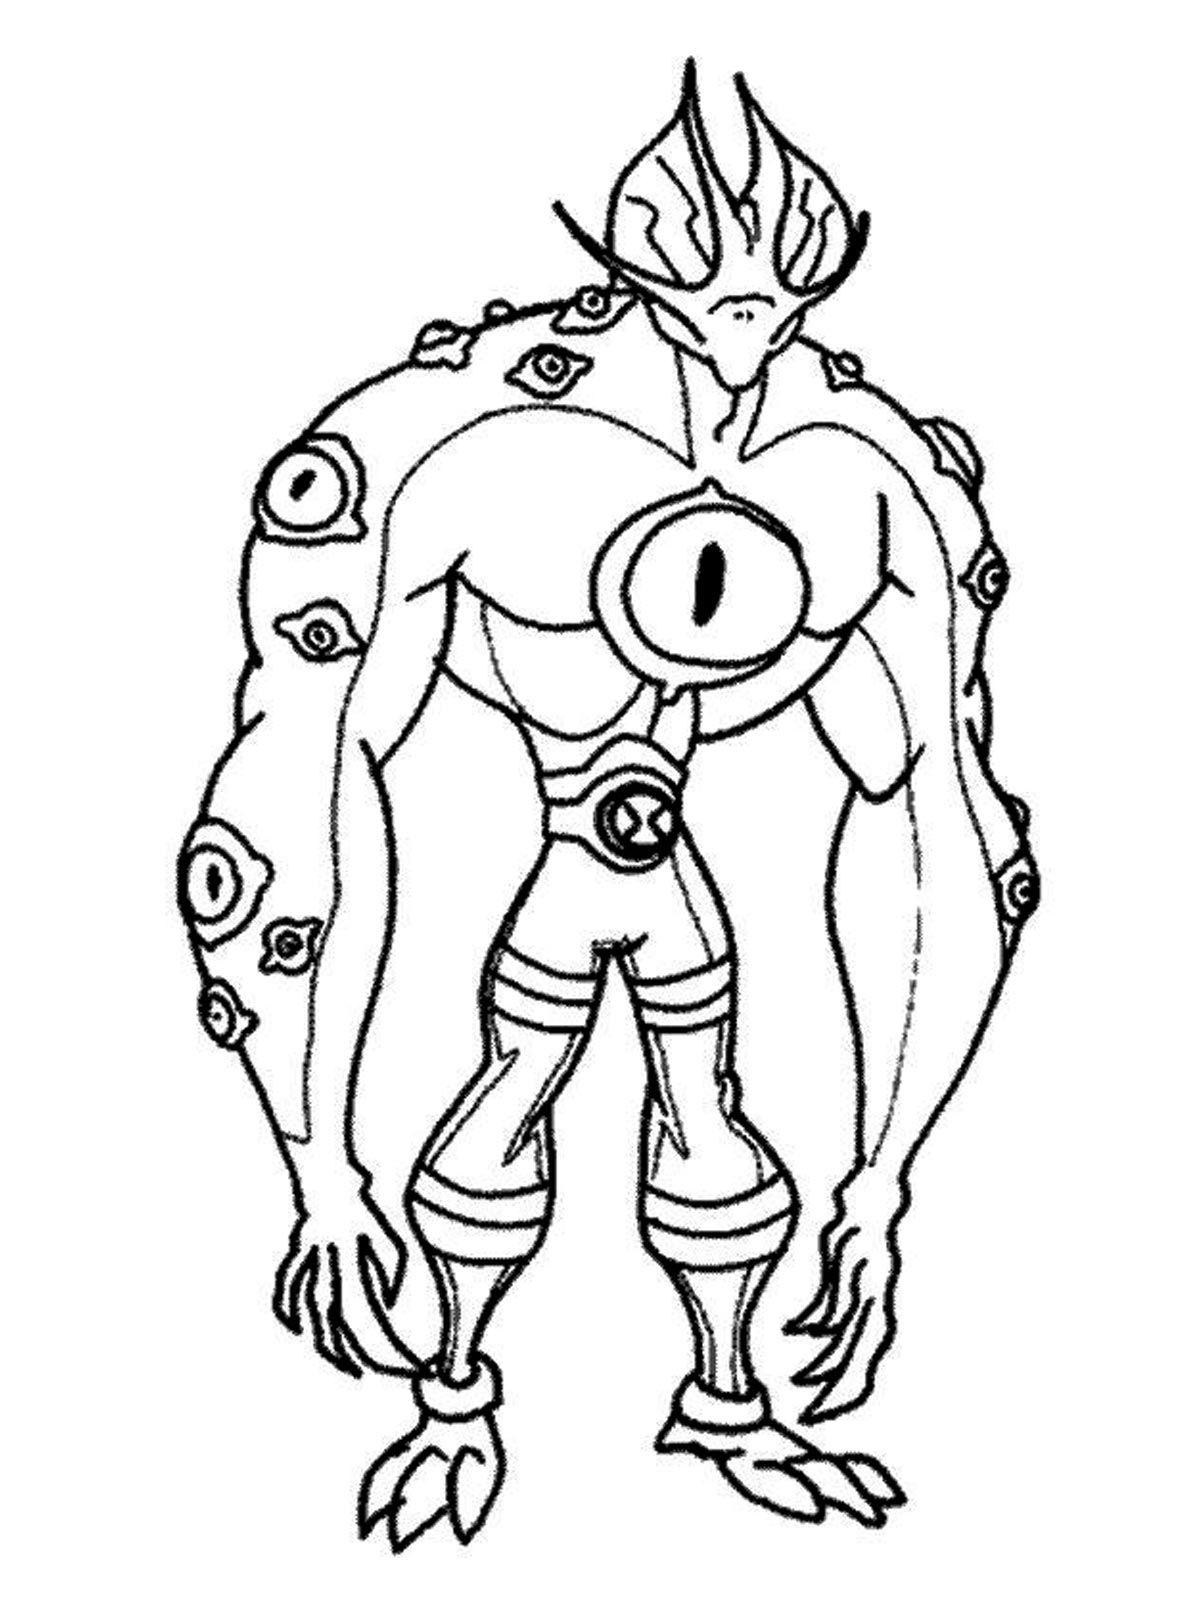 Ben 10 Swamp Fire Coloring Pages - http://www.kidscp.com/ben-10 ...